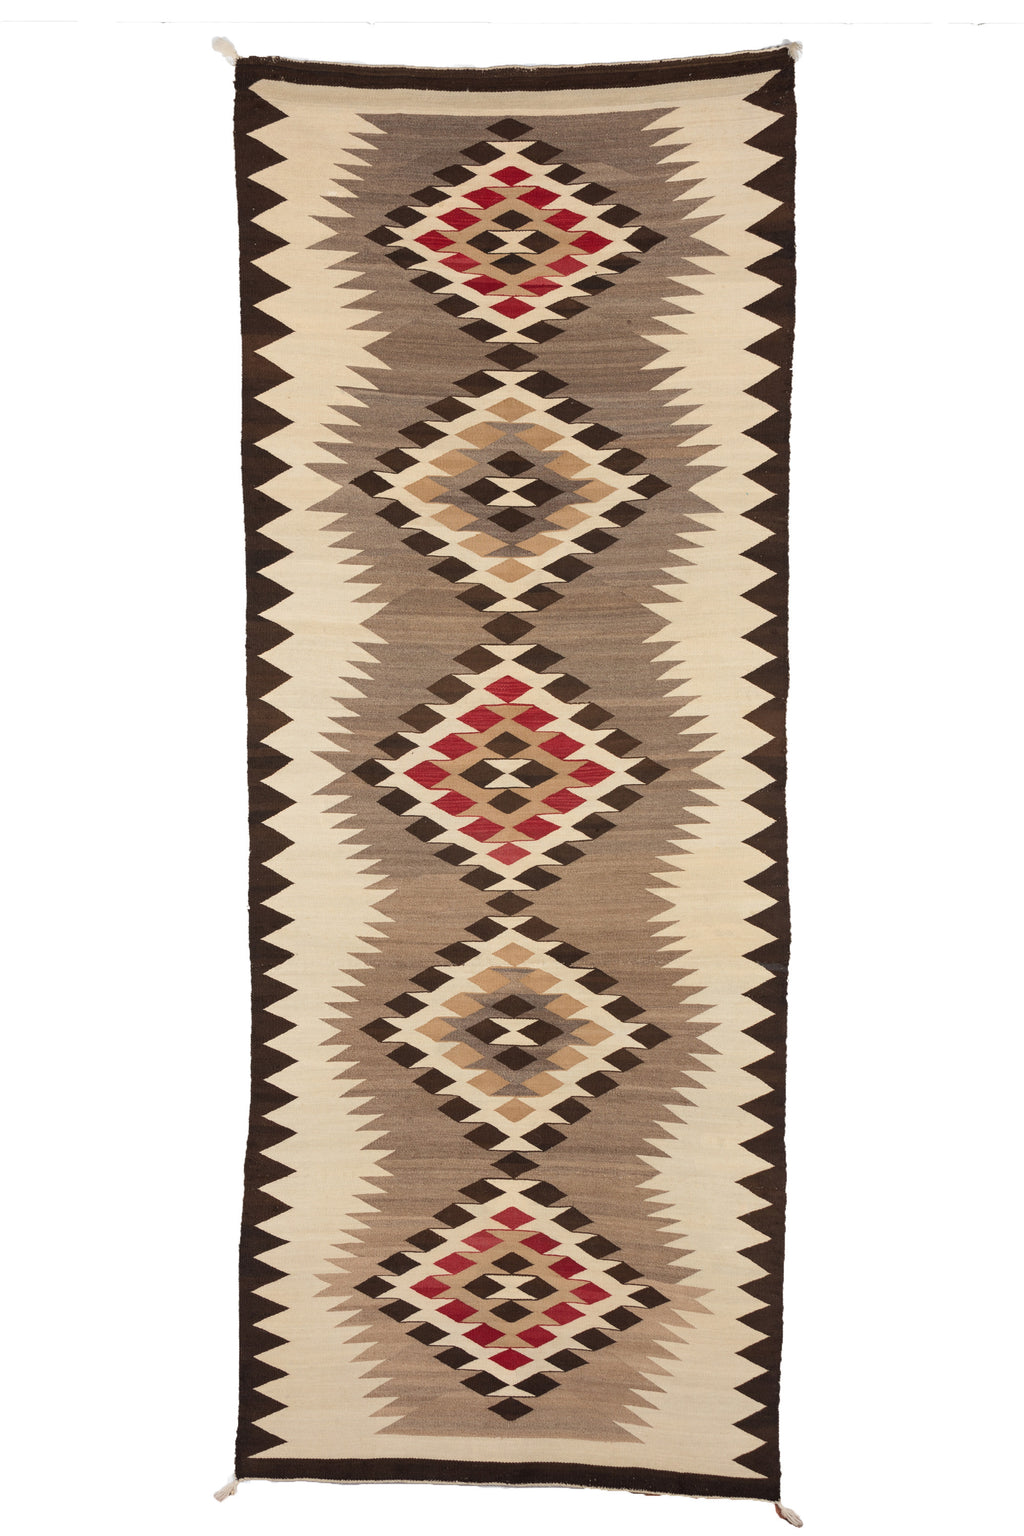 Chinle Navajo Rug : Historic Runner : PC 47 - Getzwiller's Nizhoni Ranch Gallery